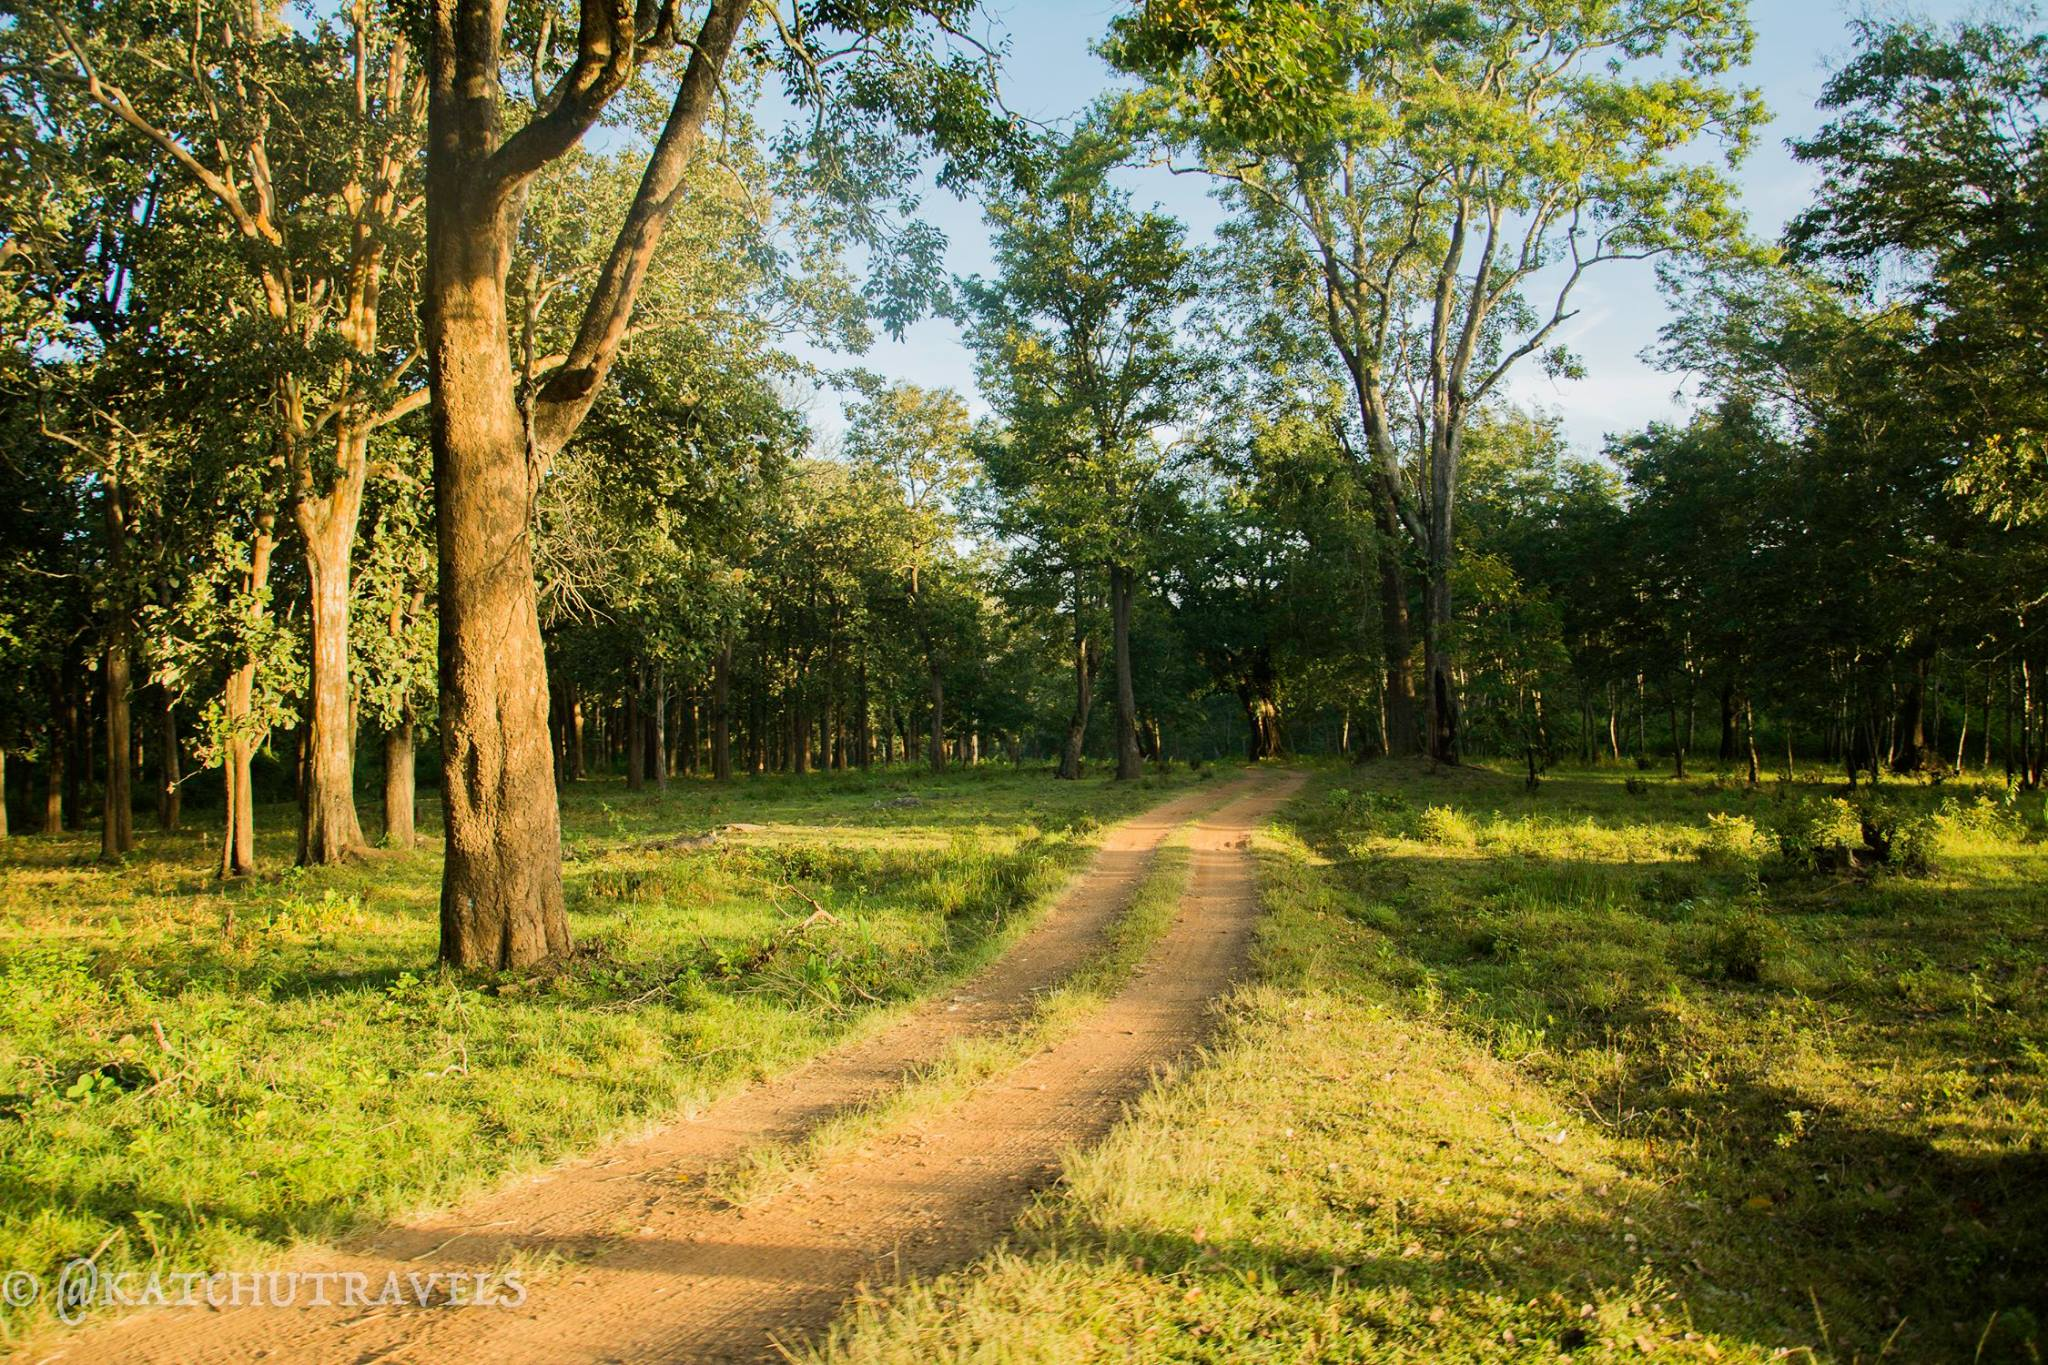 On the Nagarhole Safari Trail